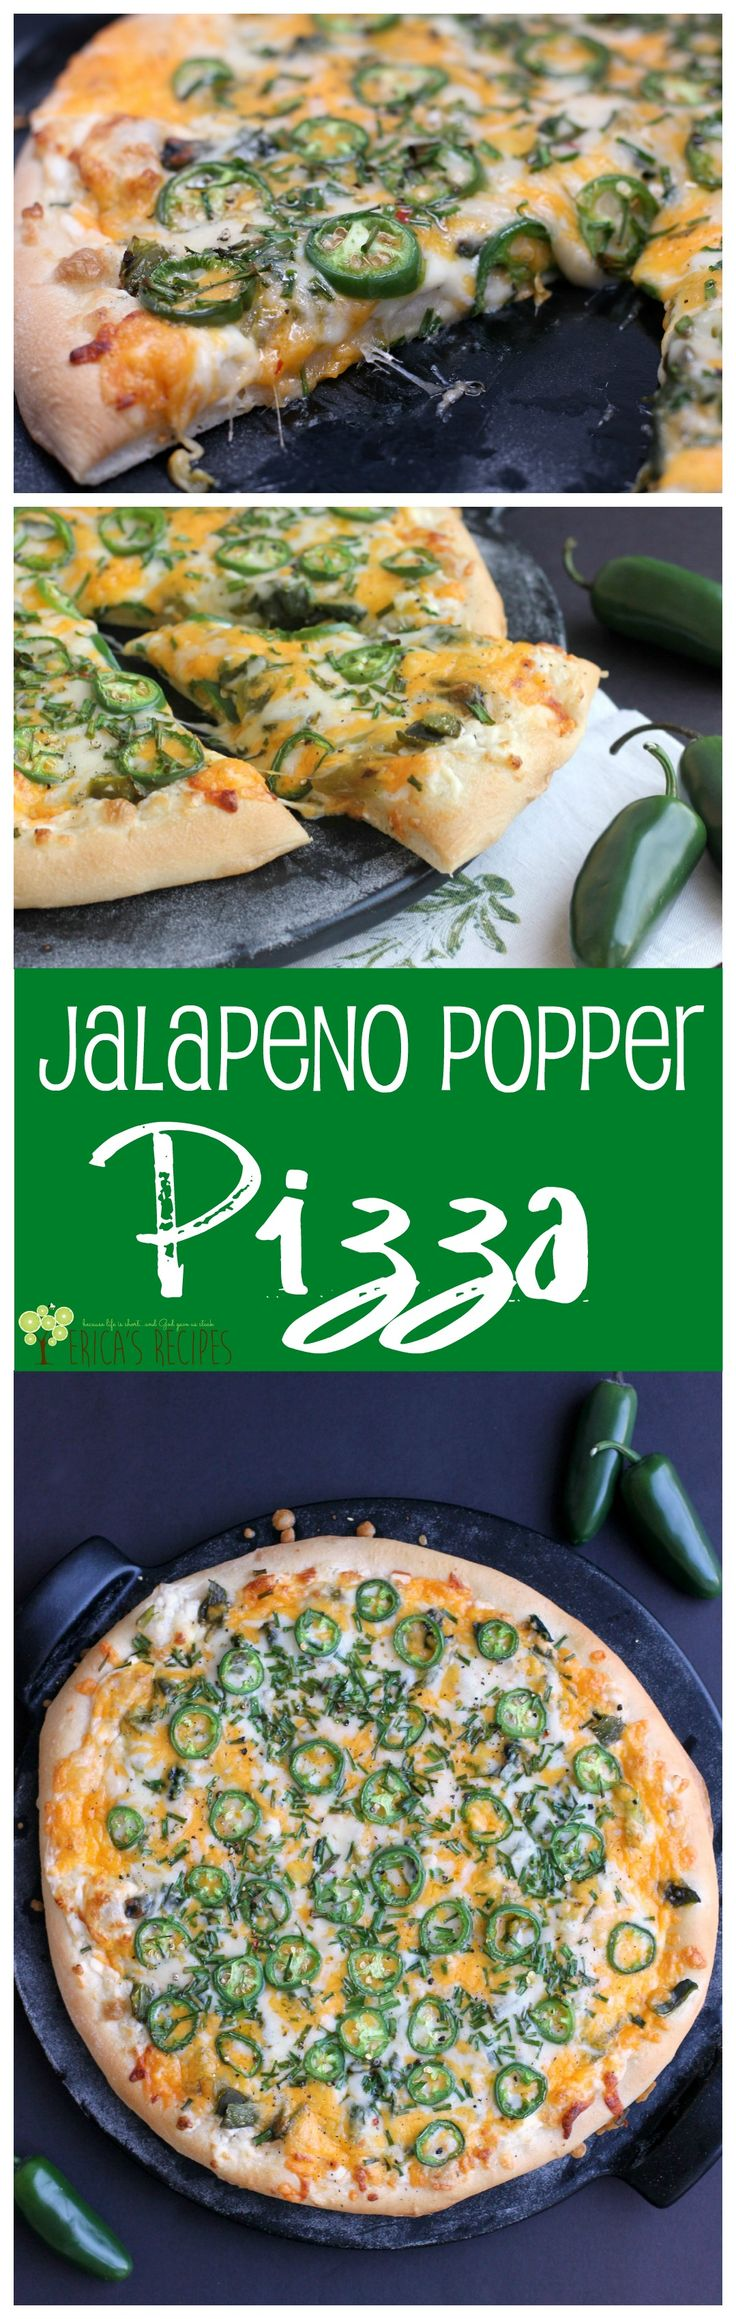 Jalapeno Popper Pizza from EricasRecipes.com